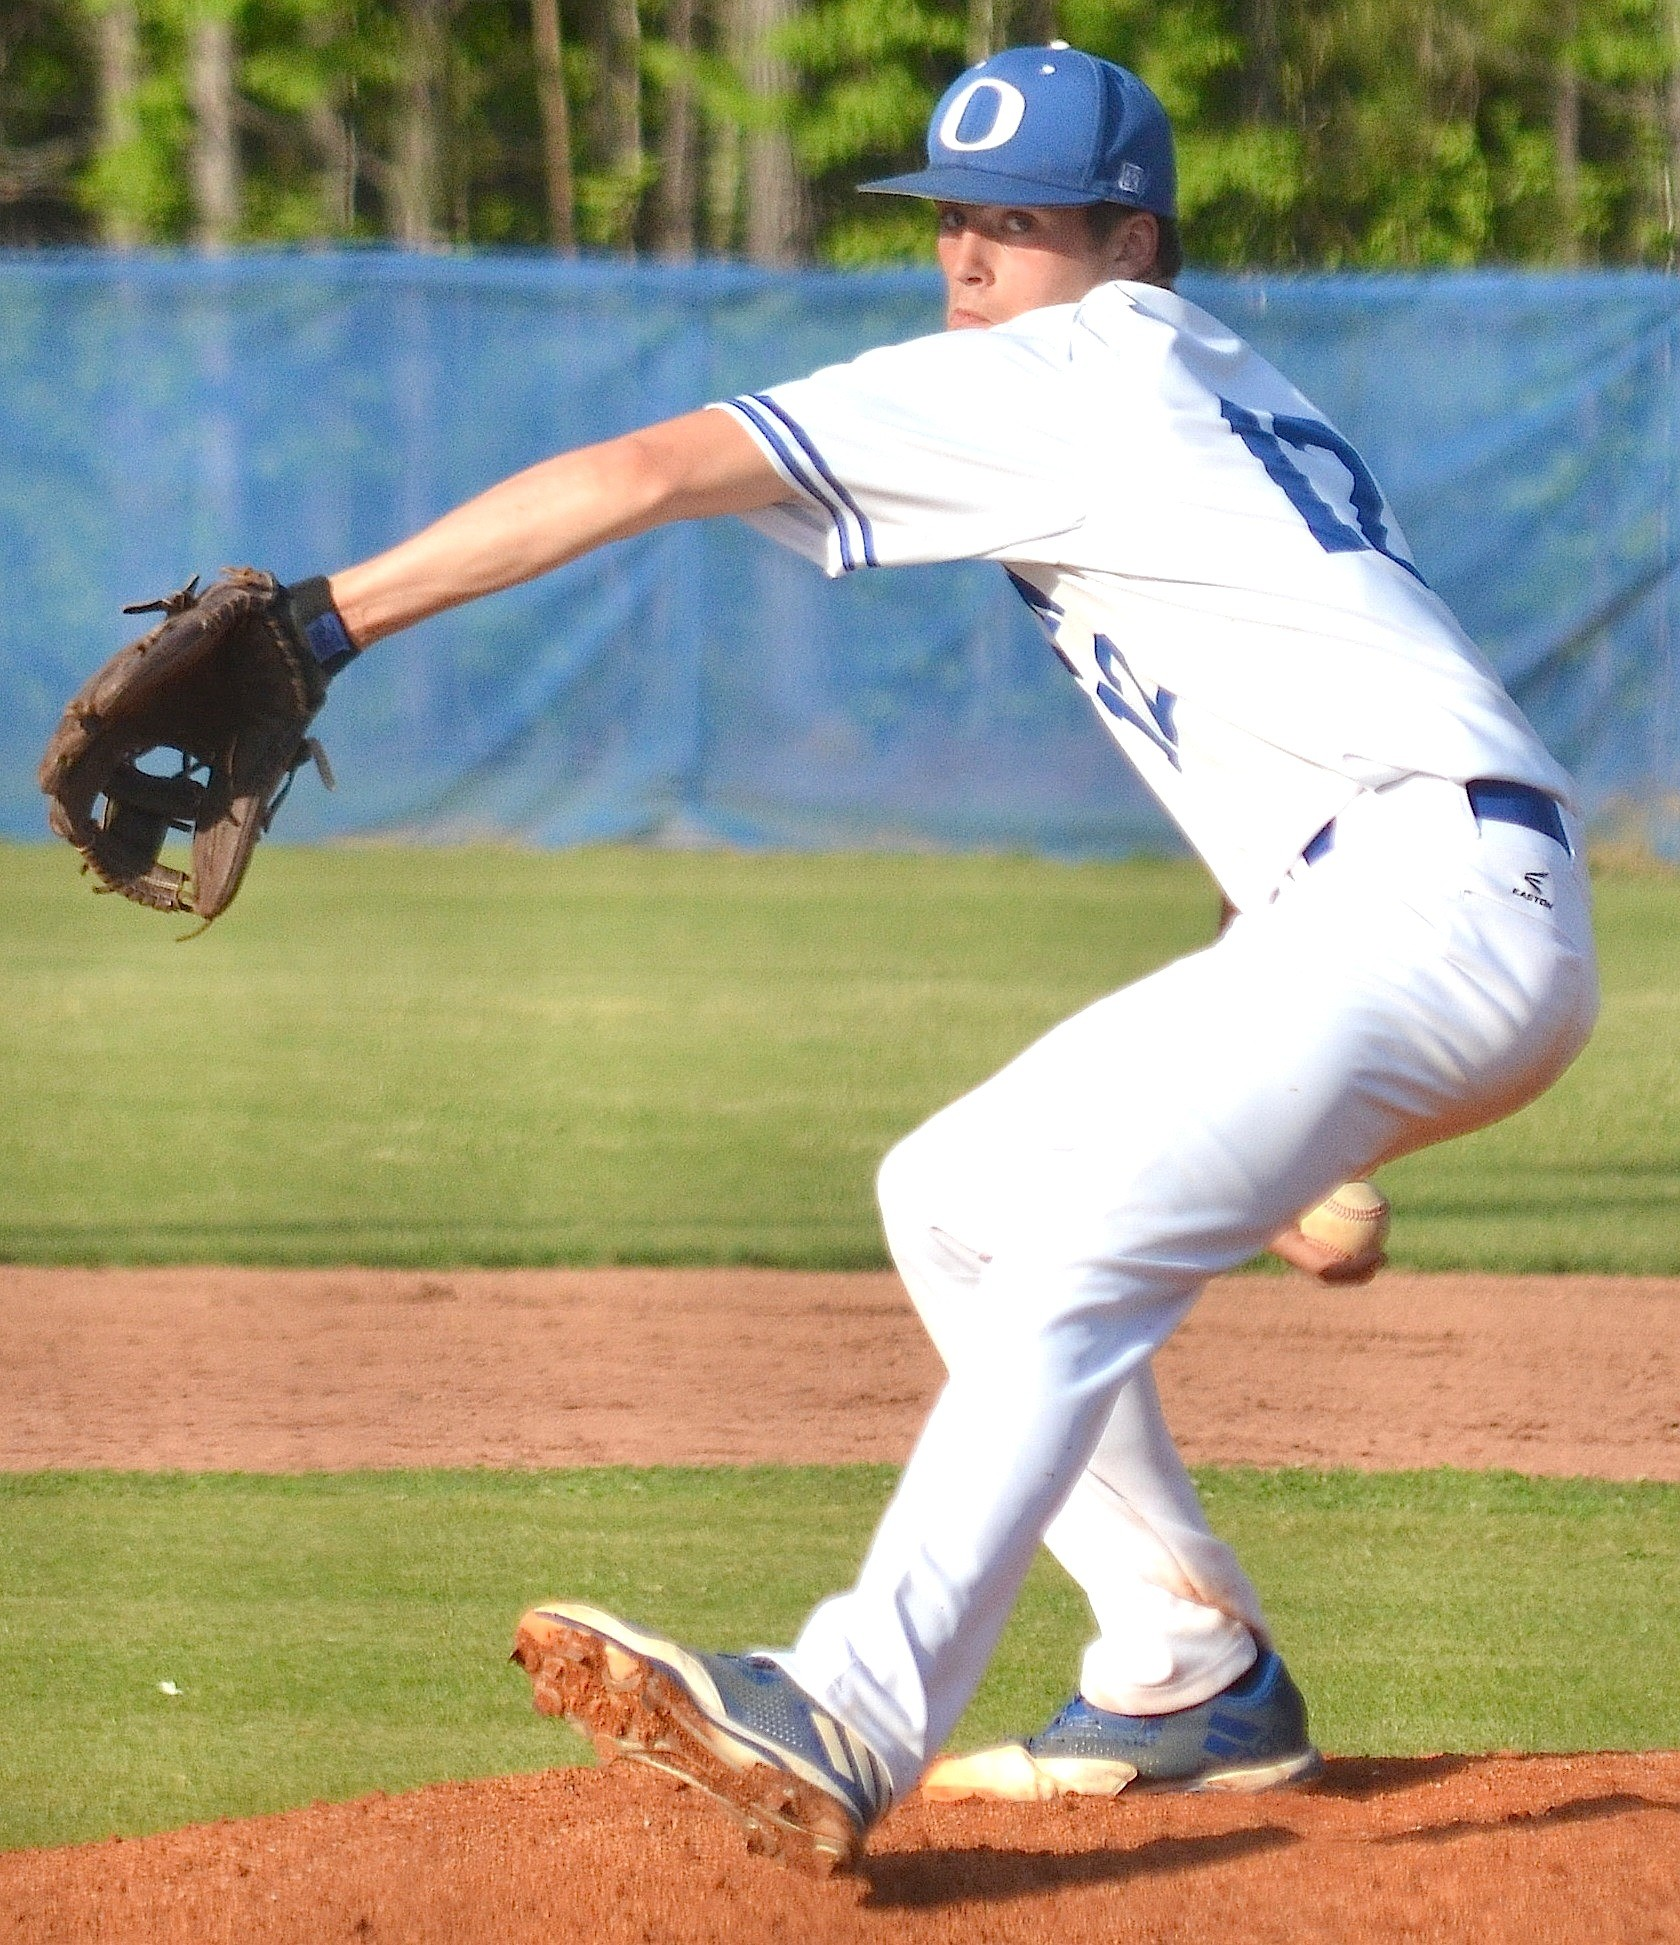 Oakman's CJ Hall is the Eagle Elite Pitcher of the Year after amassing a 7-5 record with a 1.04 ERA for the Wildcats.